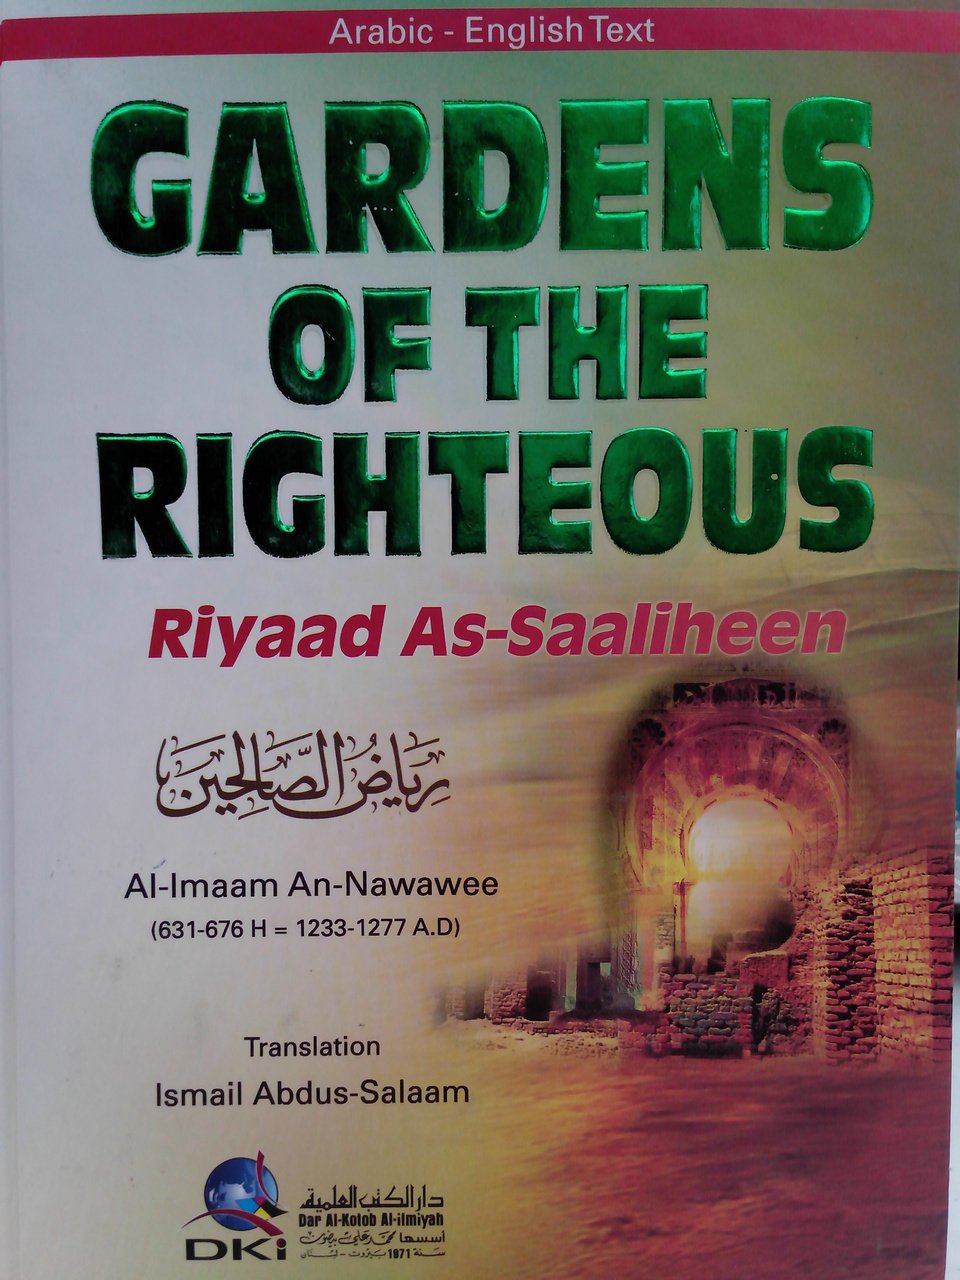 Riyaad As-Saaliheen: Gardens of the Righteous (Arabic/English text)